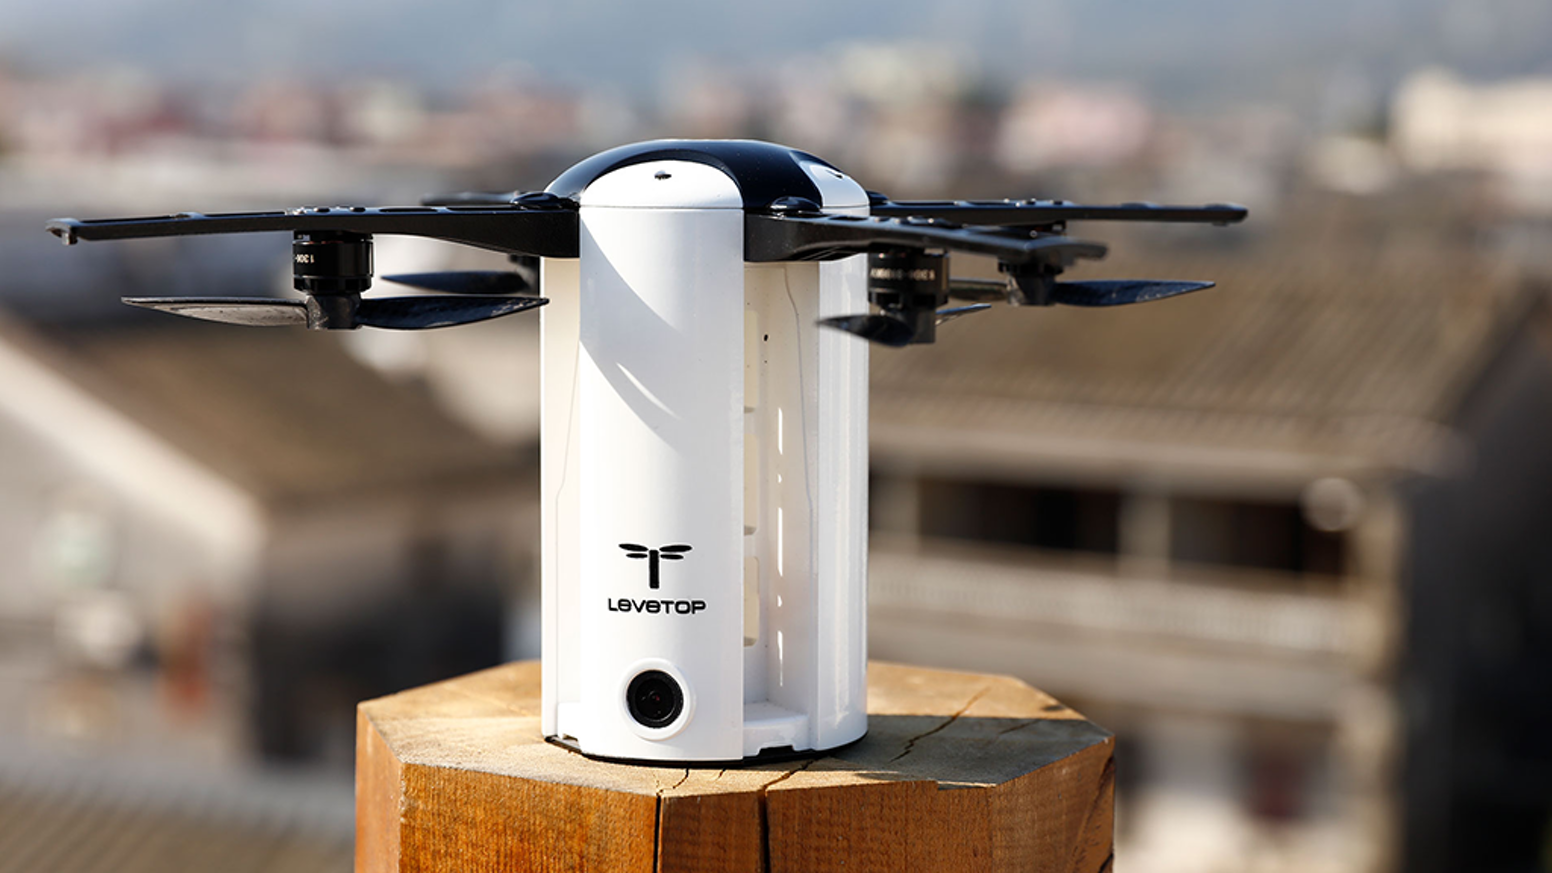 LeveTop is an intelligent drone with a 20 minute flight time, compact portable frame, & 1080P stabilized camera for everyday adventure.